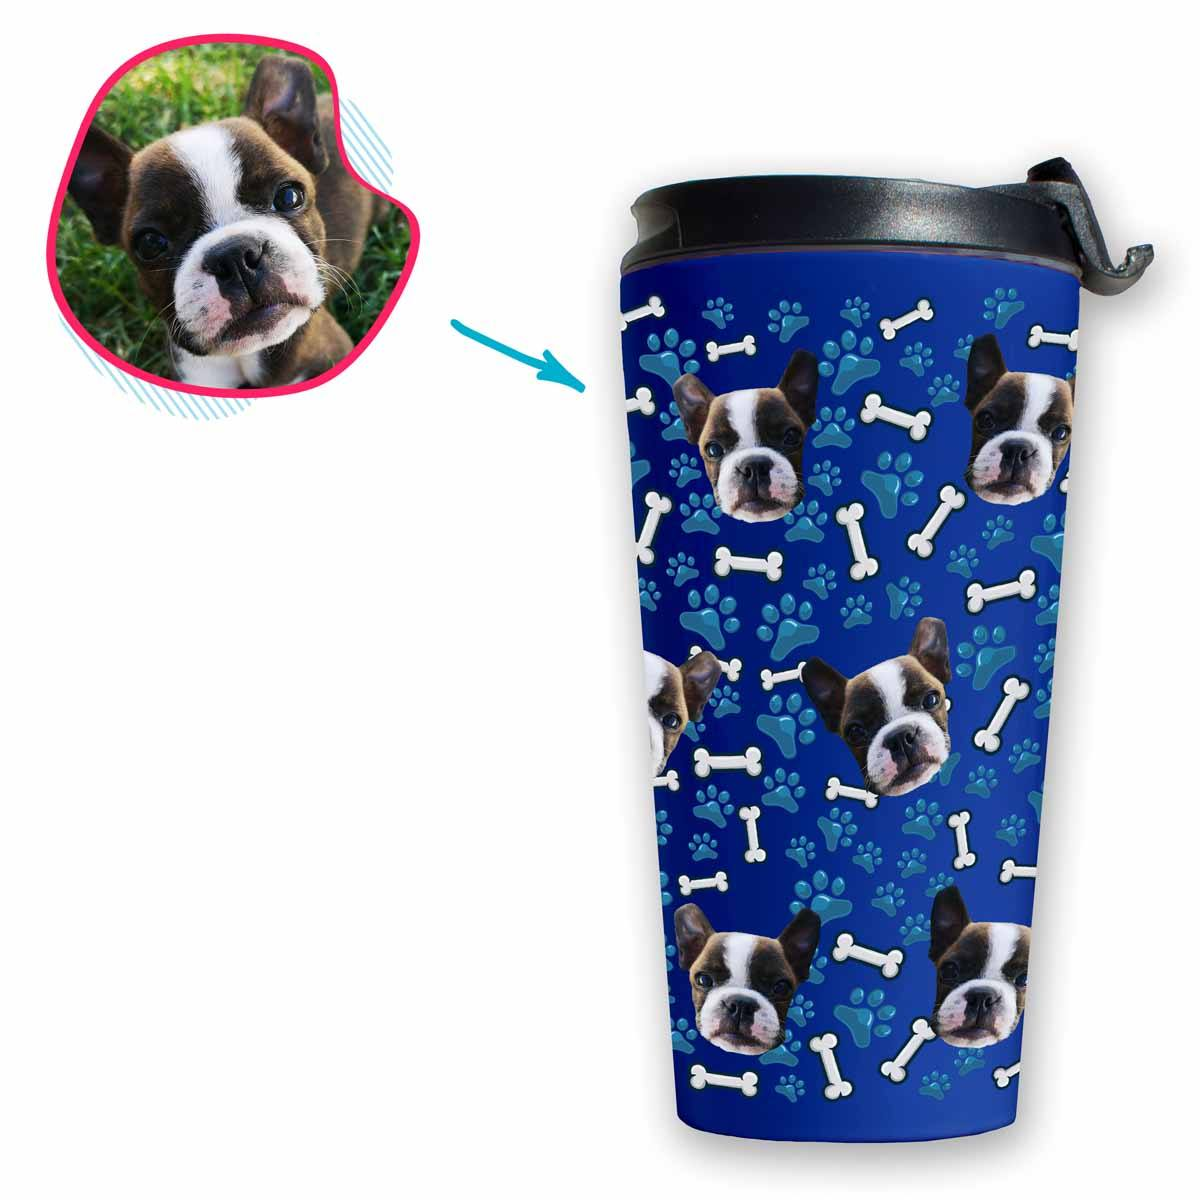 darkblue Dog travel mug personalized with photo of face printed on it